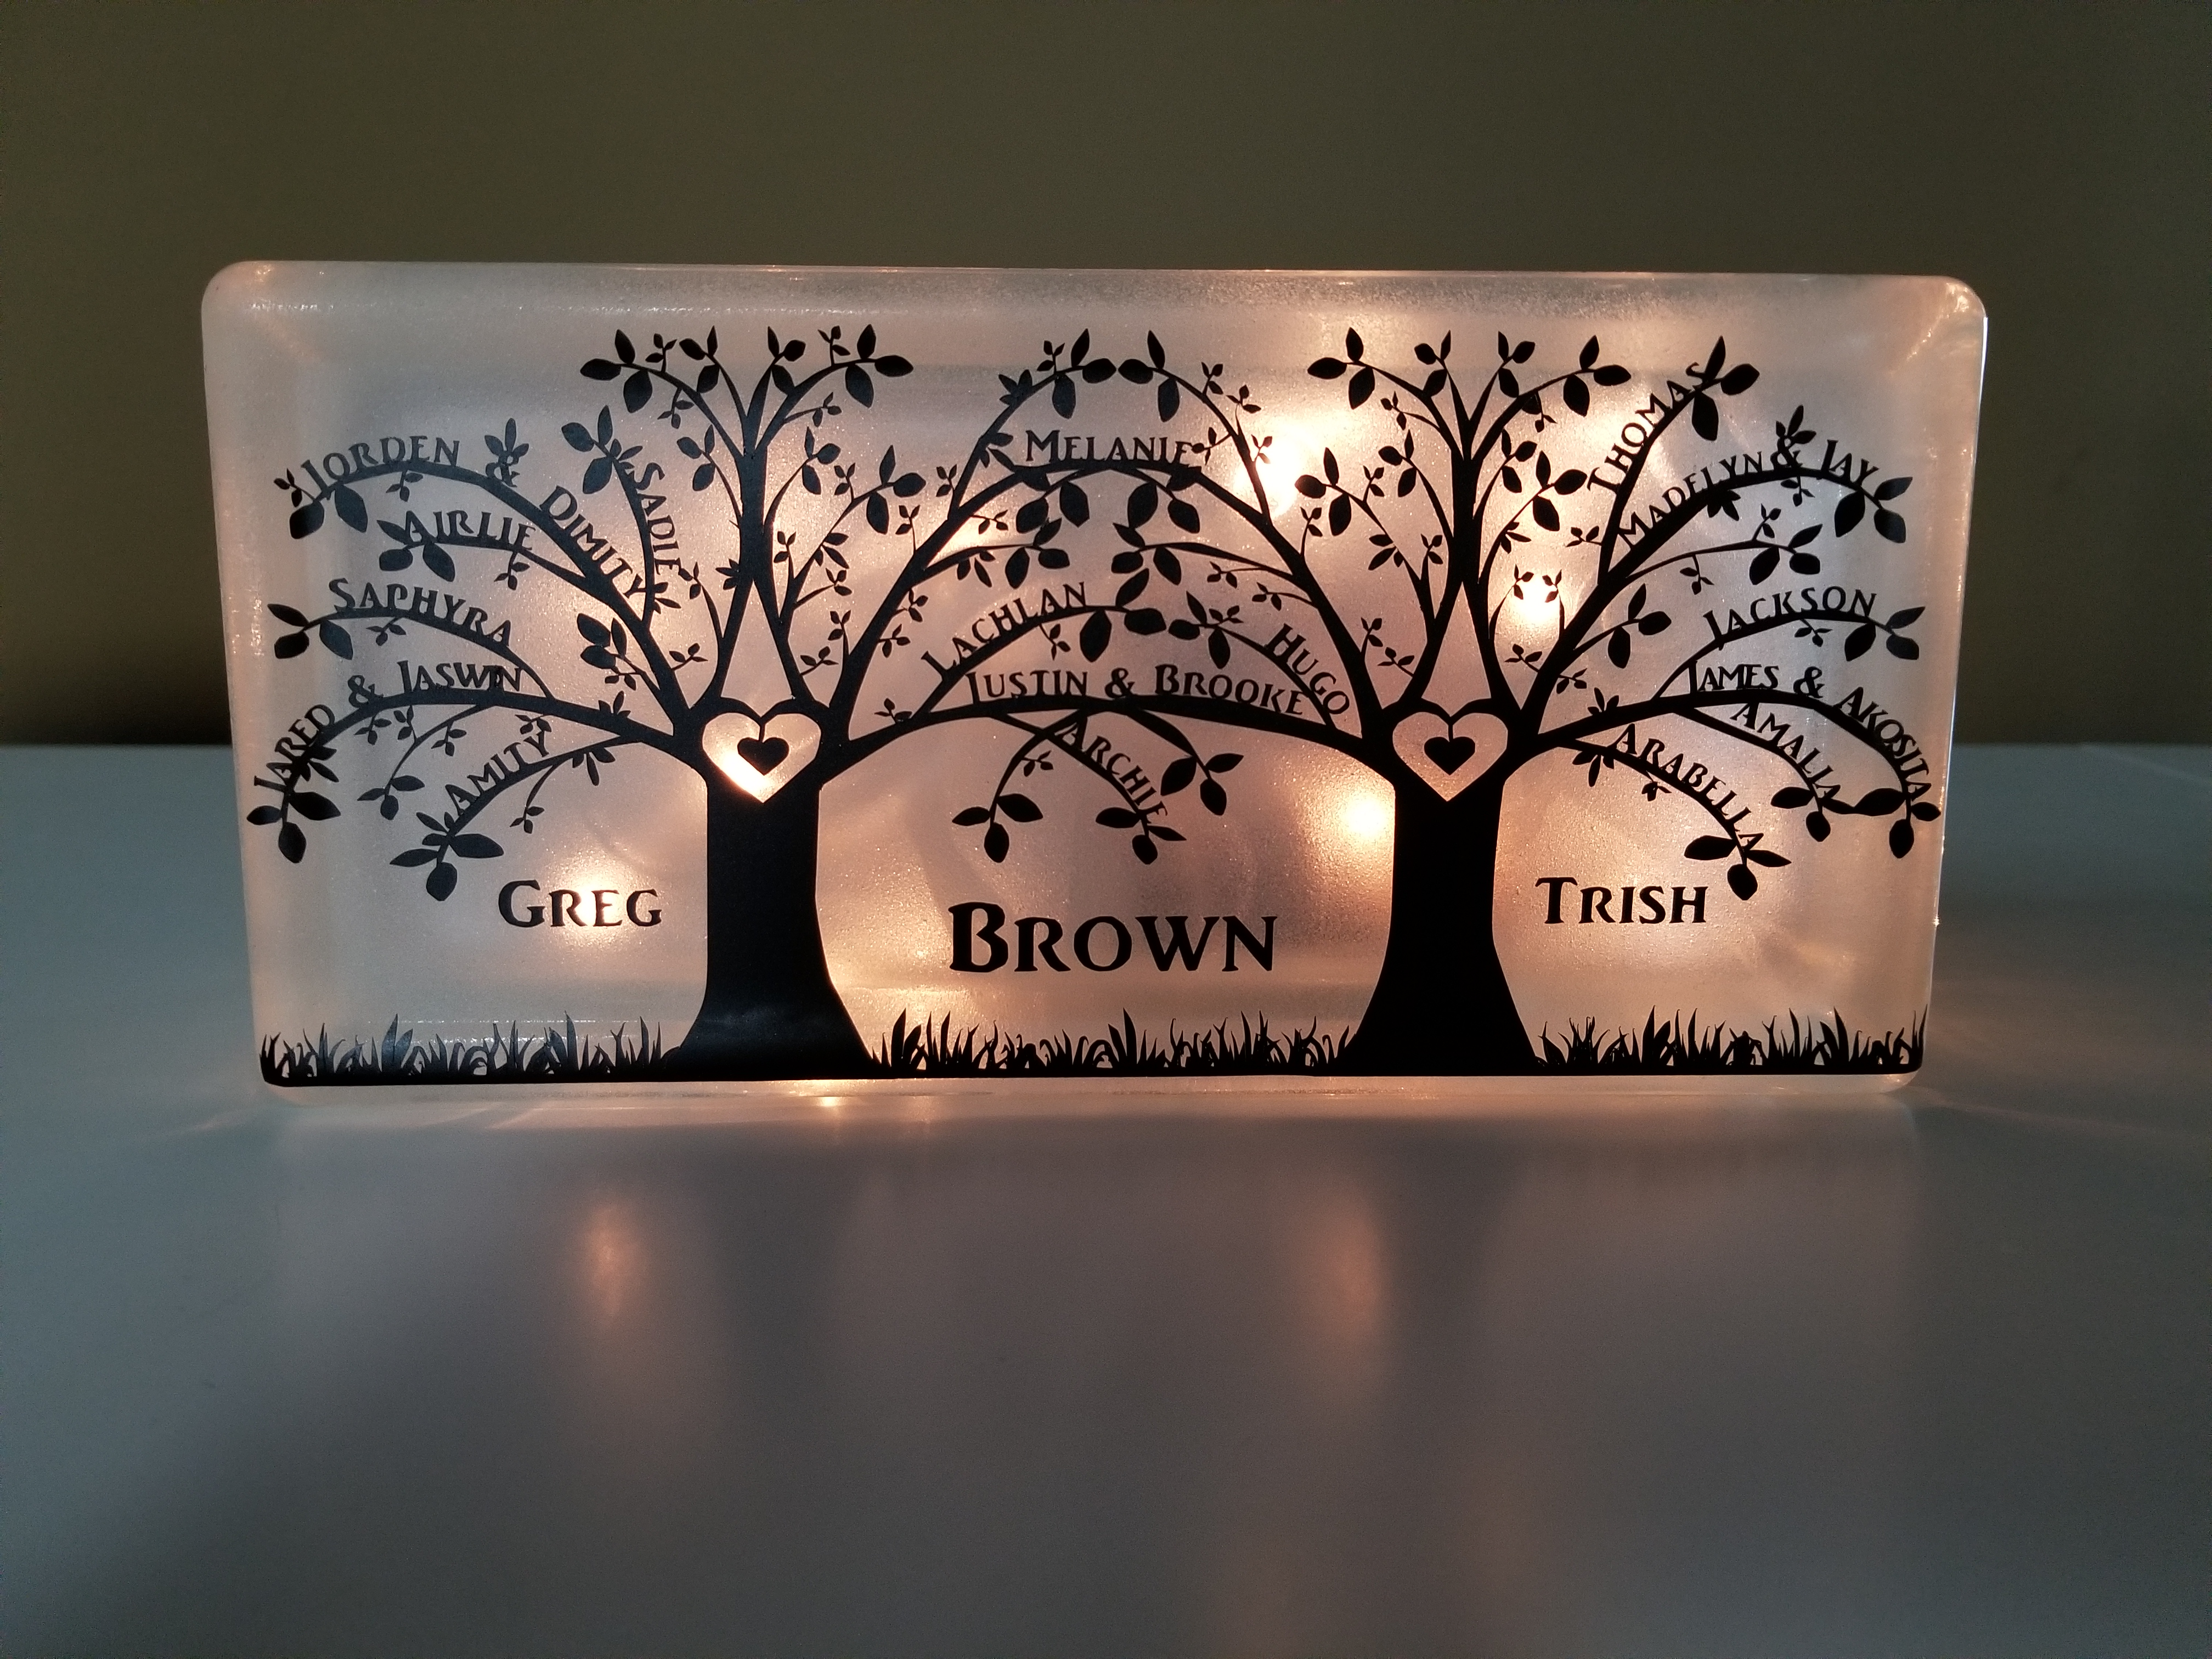 Family Tree. With this SVG file you can personalize the tree branches to show the names of everyone in the family. How fun is that? You can put this design on just about anything. It will be a one of kind.